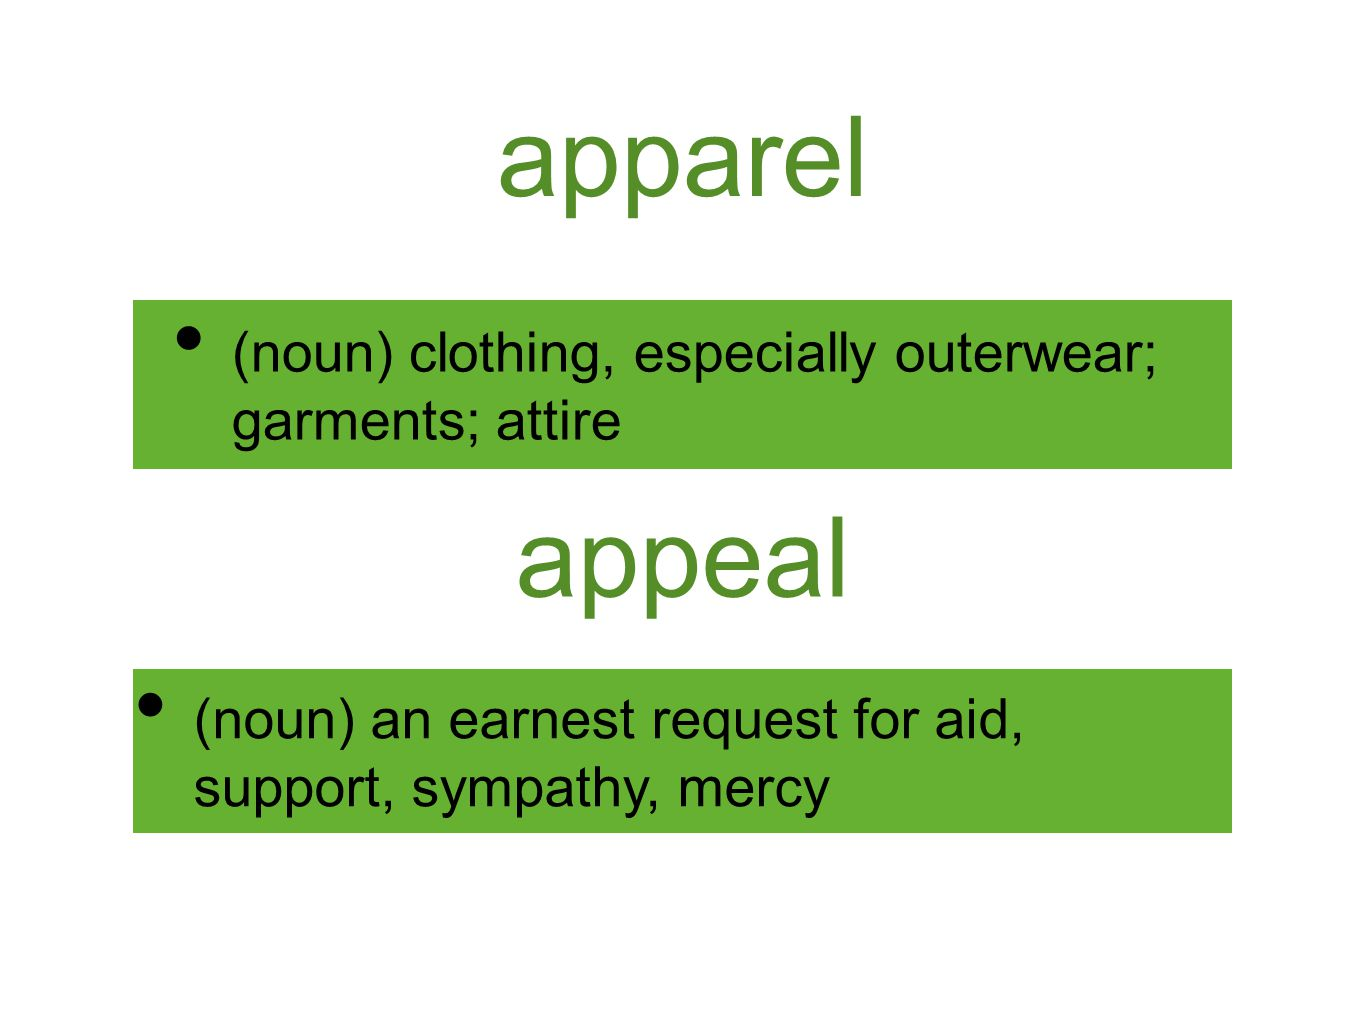 apparel (noun) clothing, especially outerwear; garments; attire appeal (noun) an earnest request for aid, support, sympathy, mercy